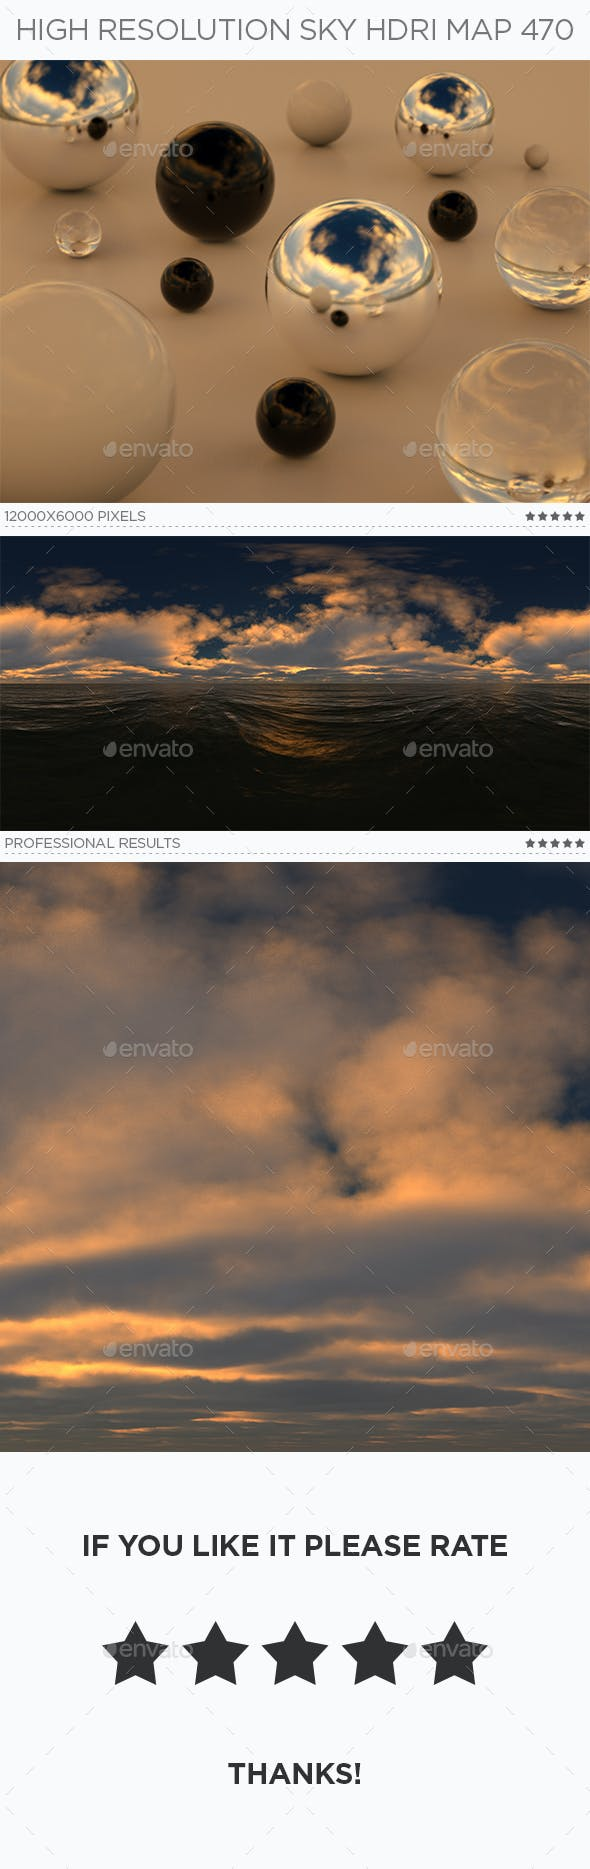 High Resolution Sky HDRi Map 470 - 3DOcean Item for Sale